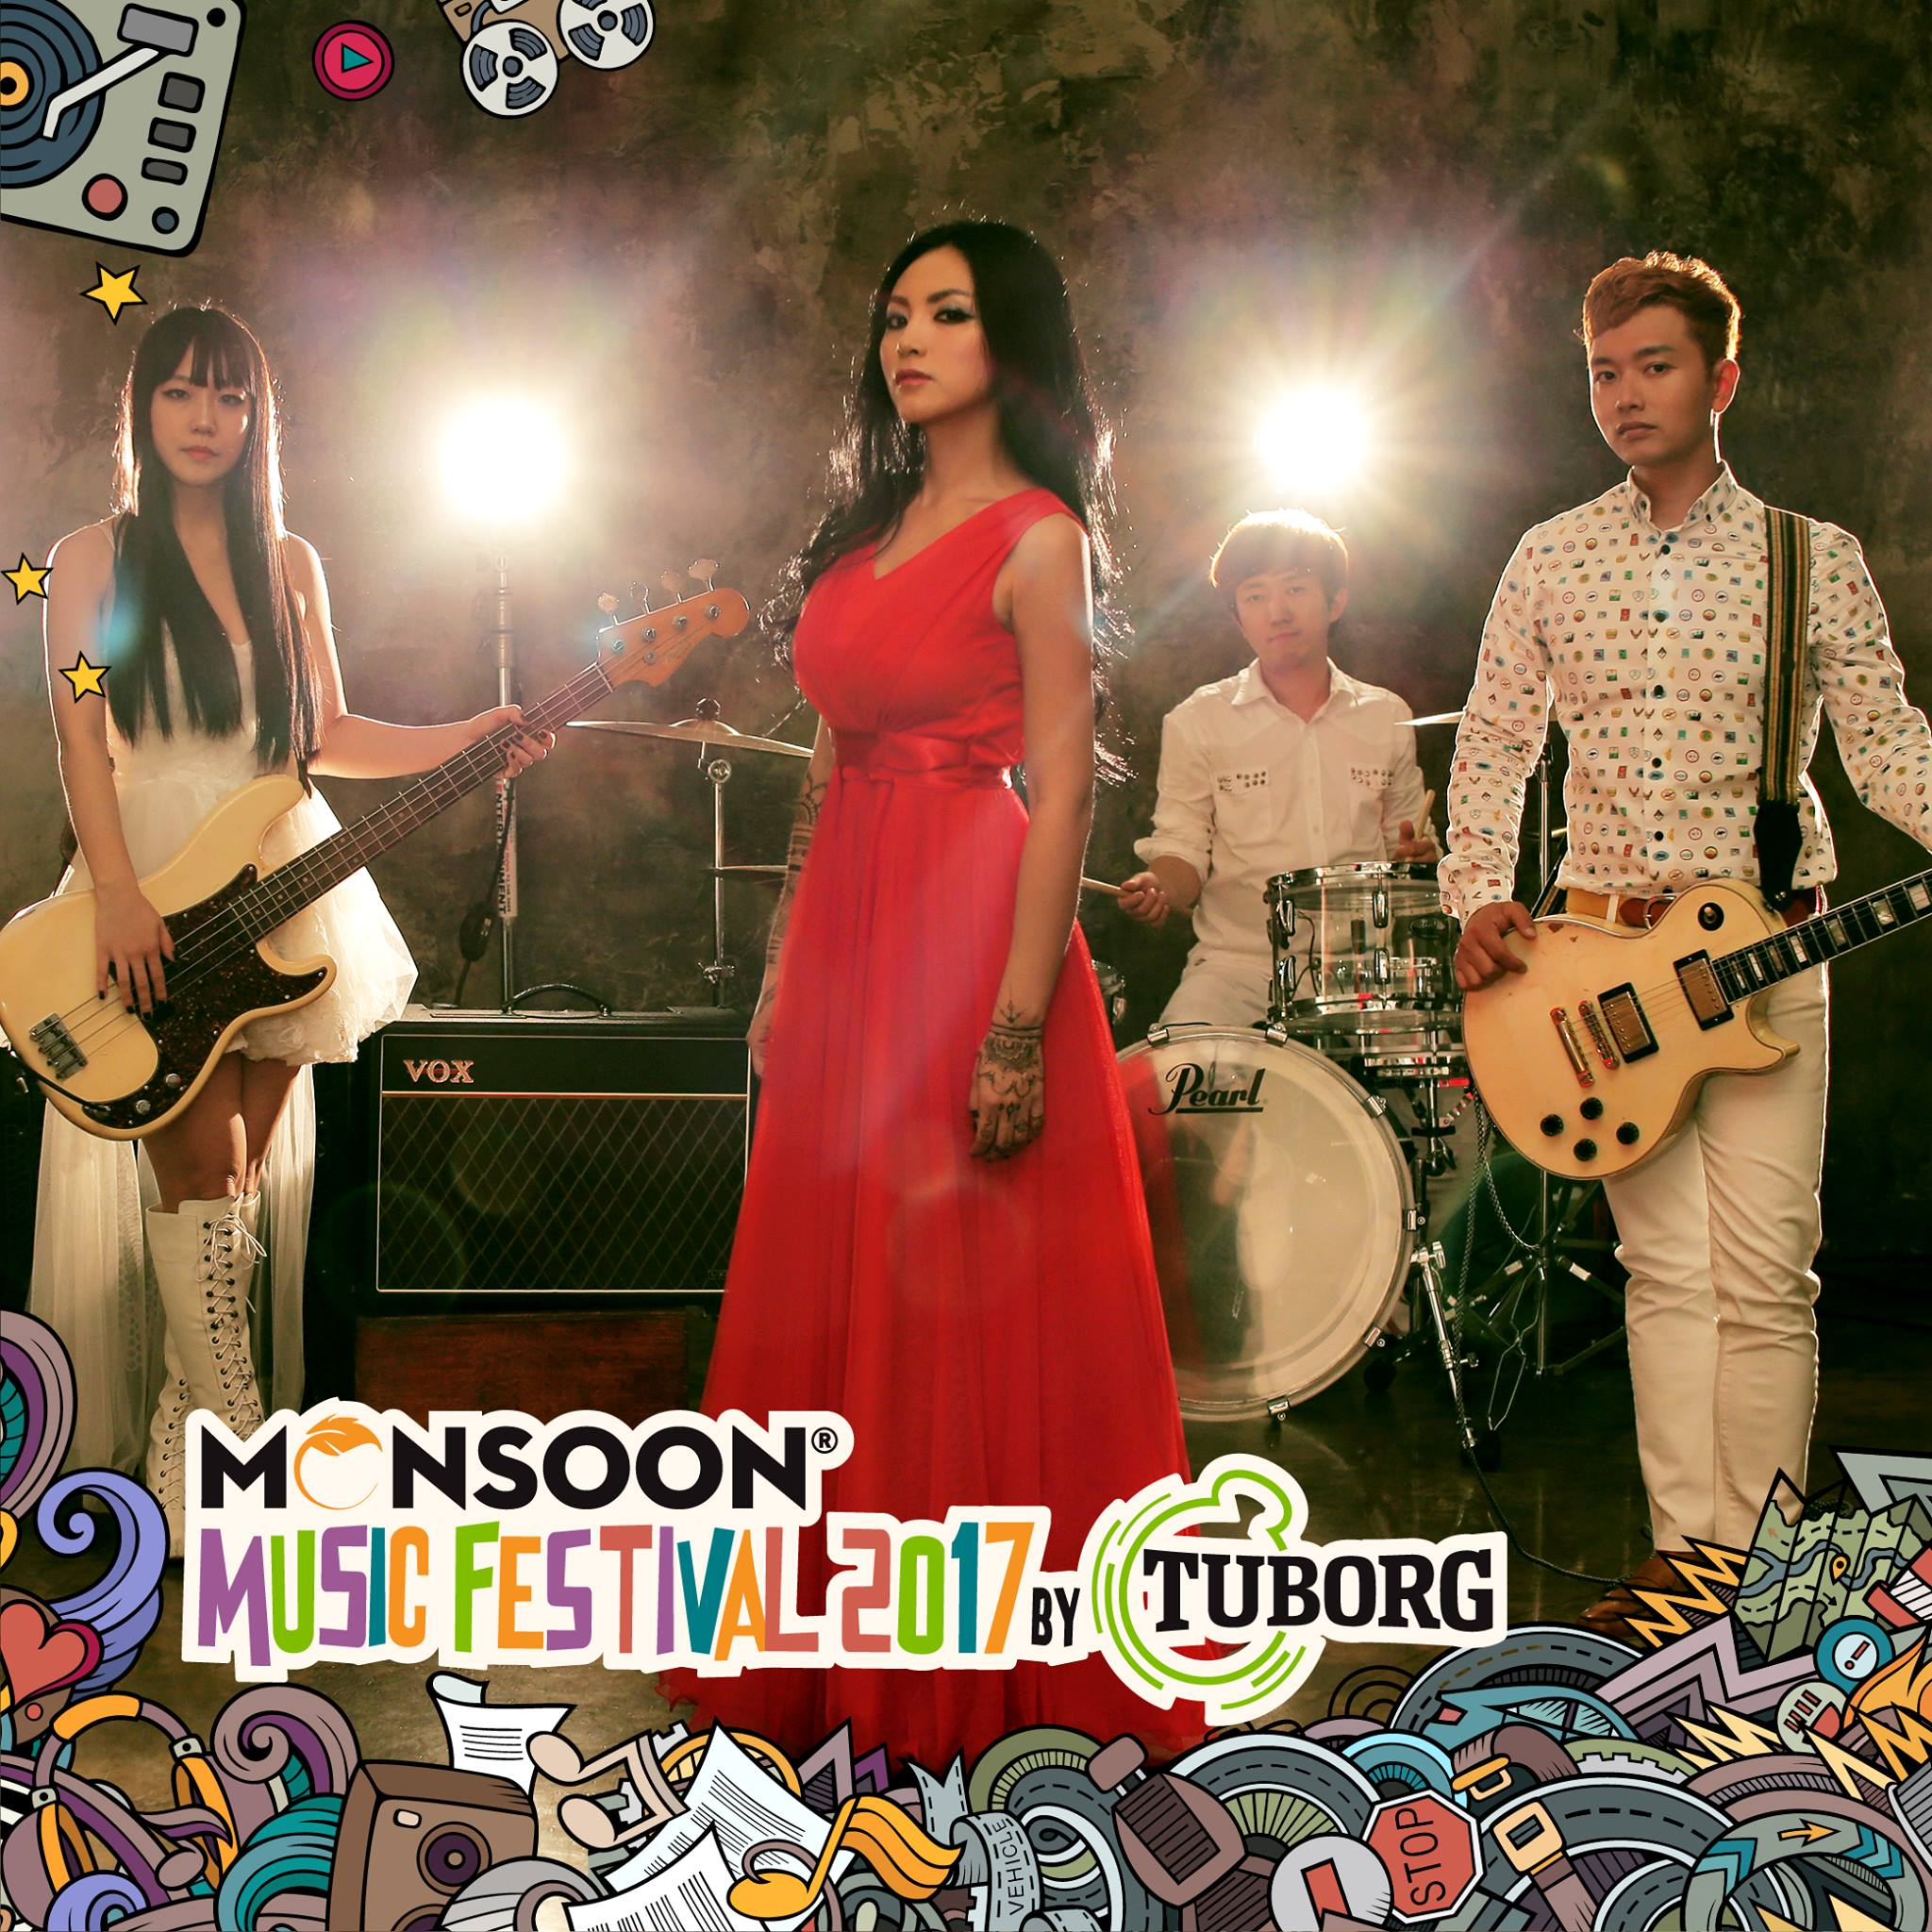 Biuret_monsoon music festival 2017.jpg